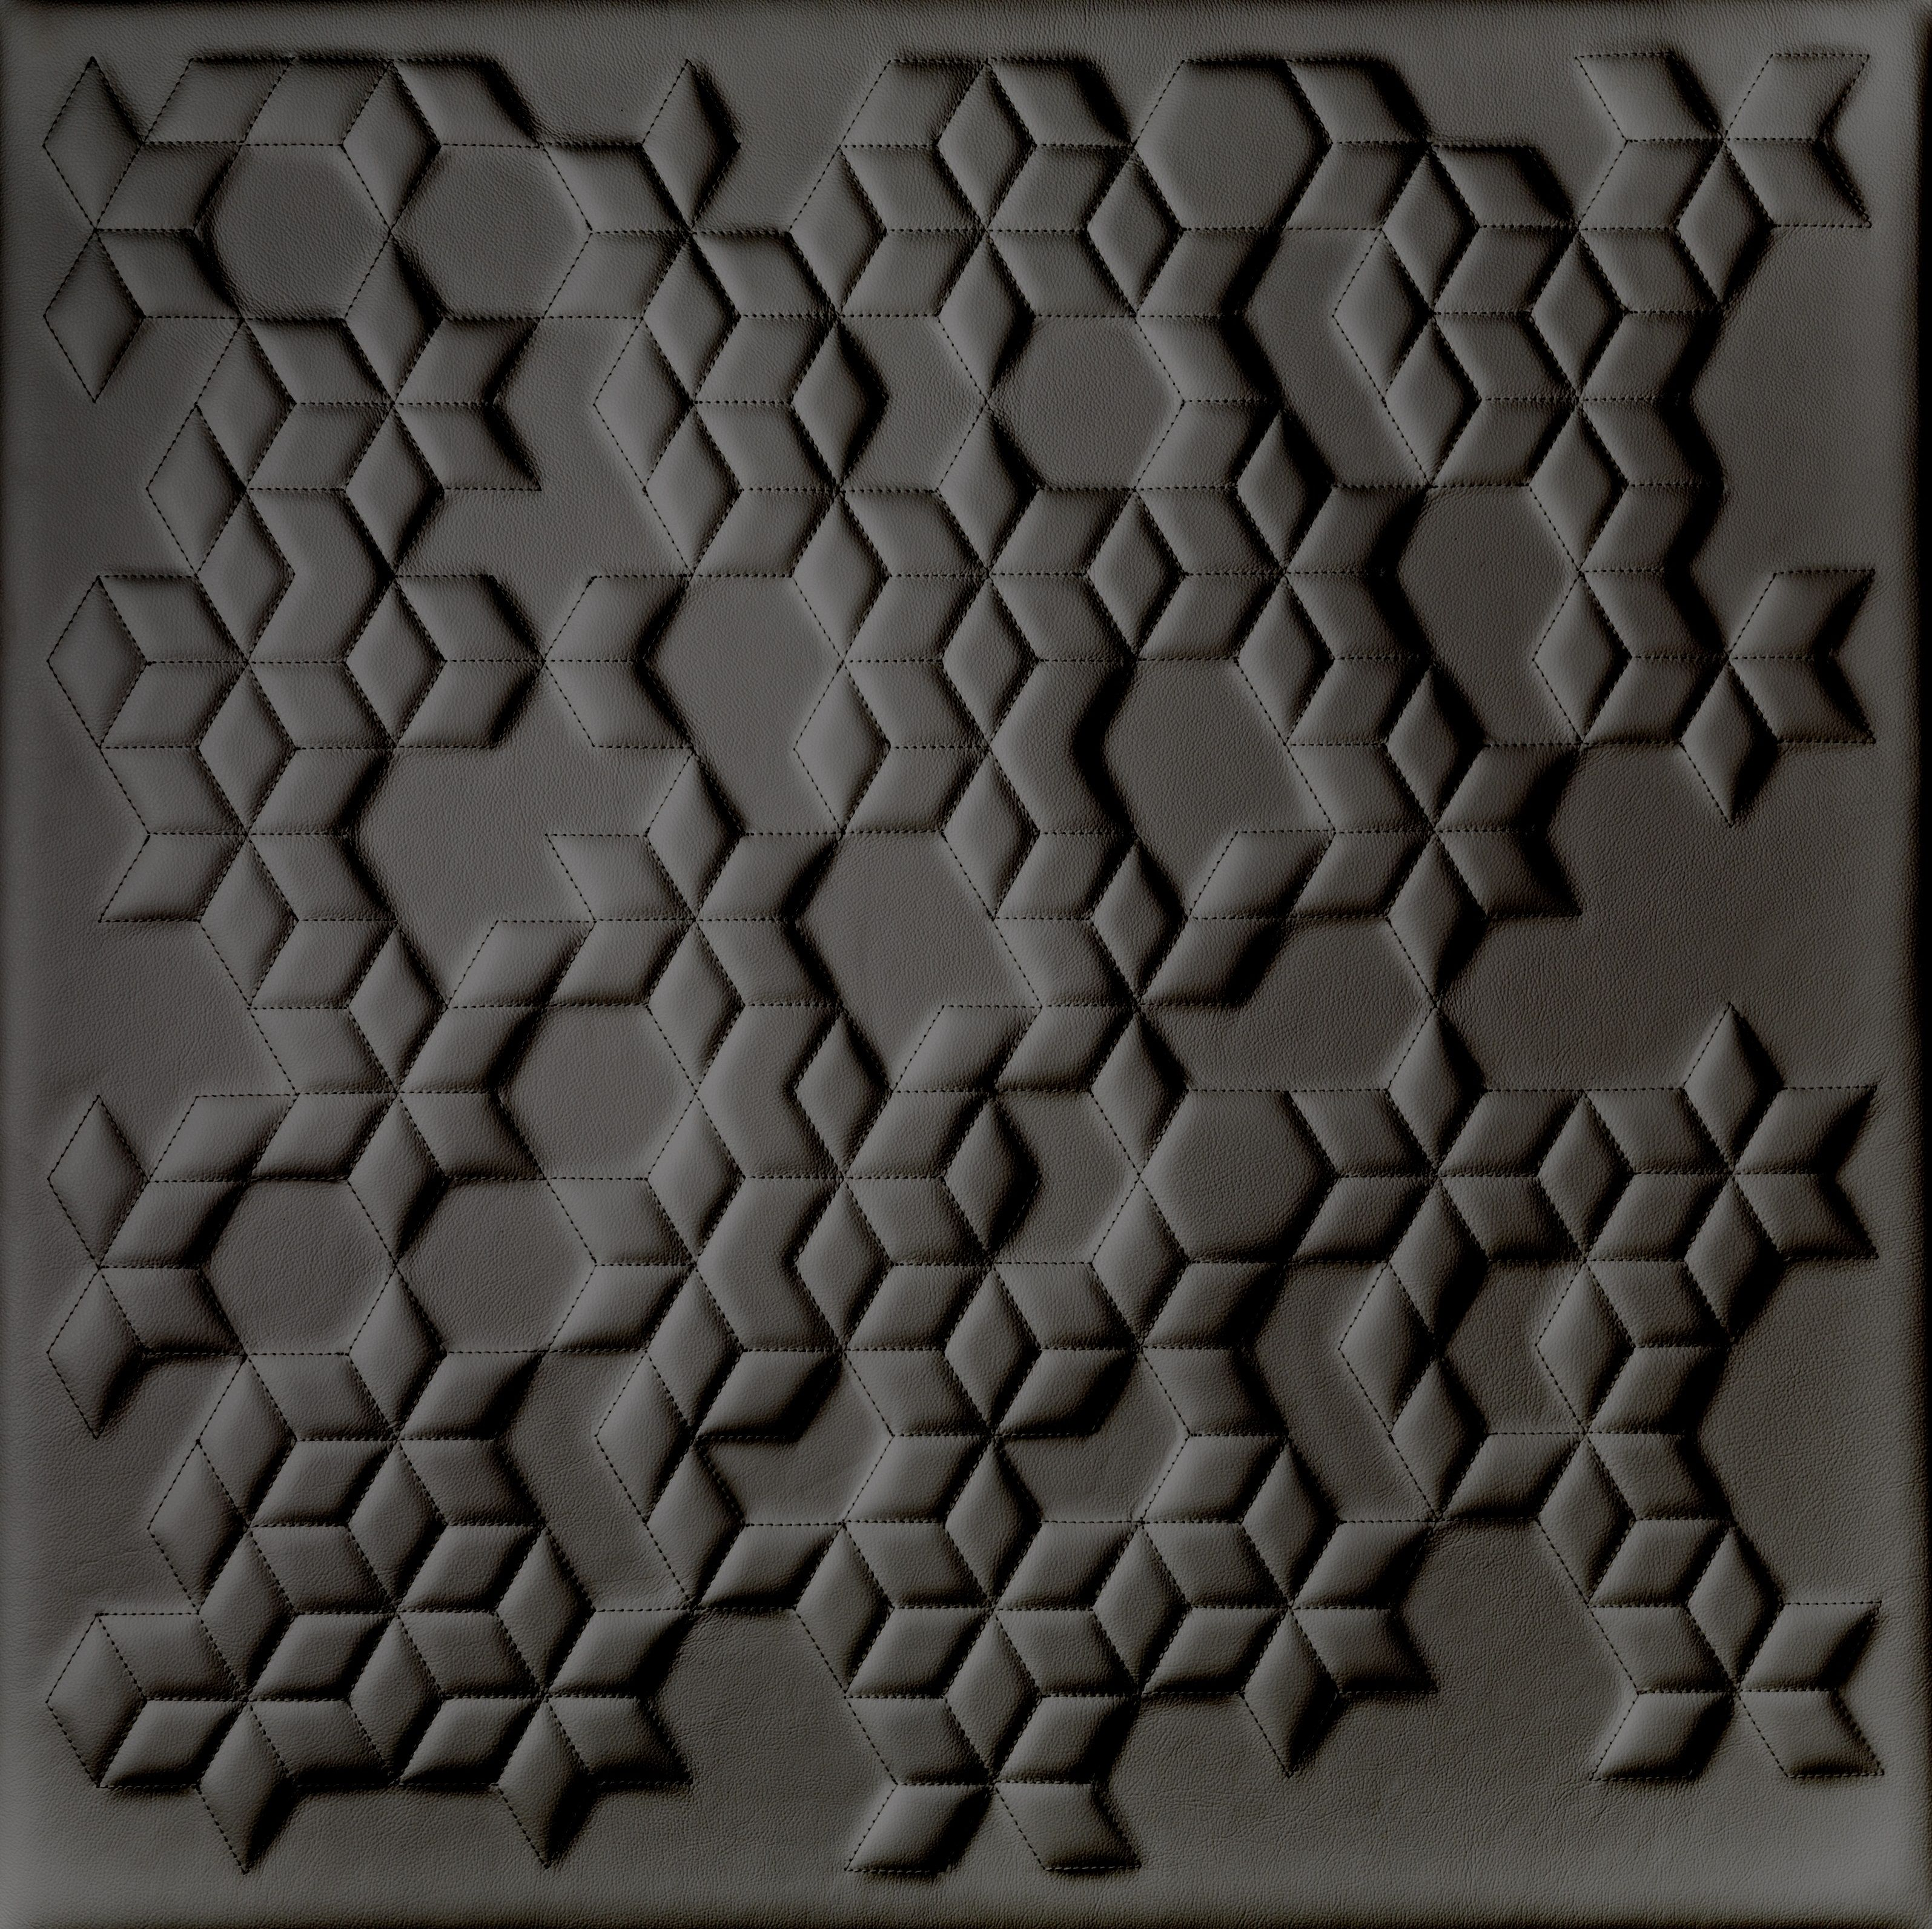 3D Leather Wall Panel in a Quilted Diamond Design by BMS ...